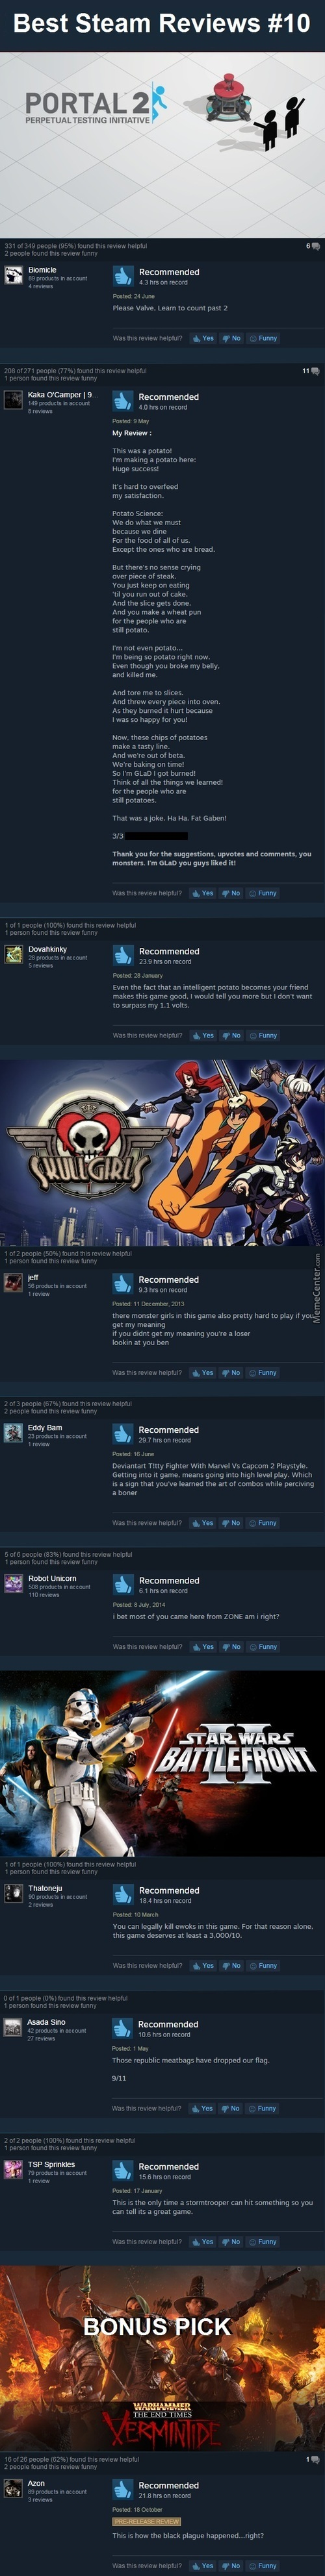 Best Steam Reviews #10 - I'm Actually Running Out Of Good Reviews